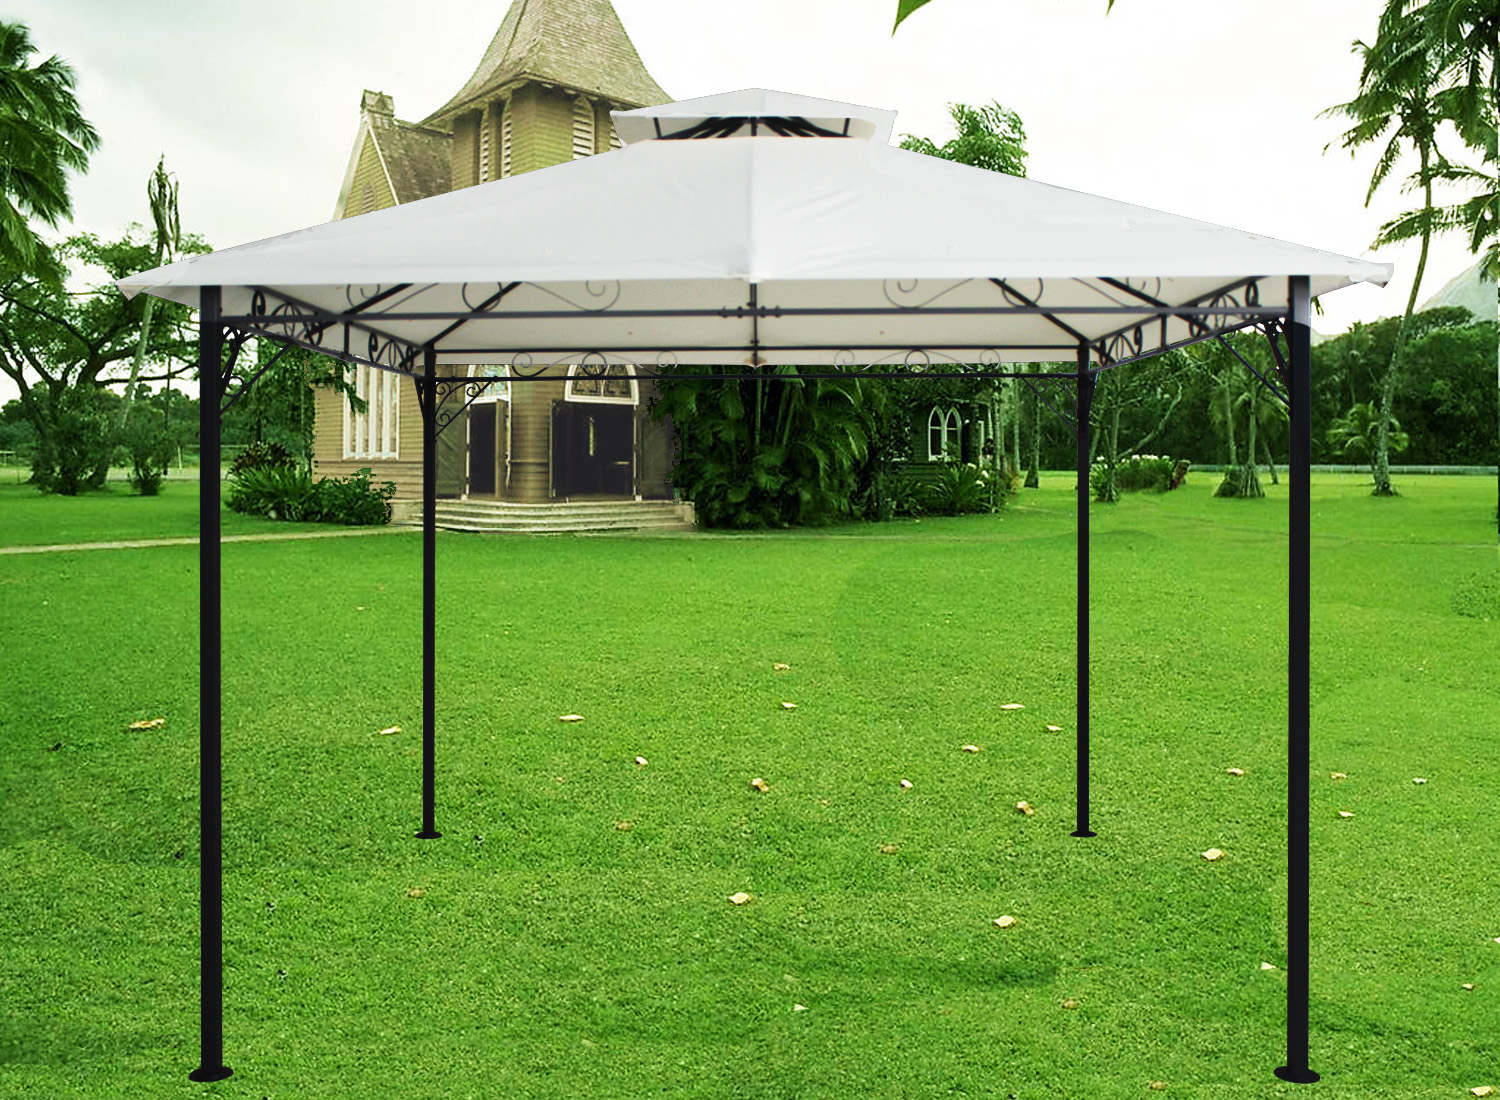 Metal Canopy Shelter : Metal wall gazebo awning canopy pergola shade marquee